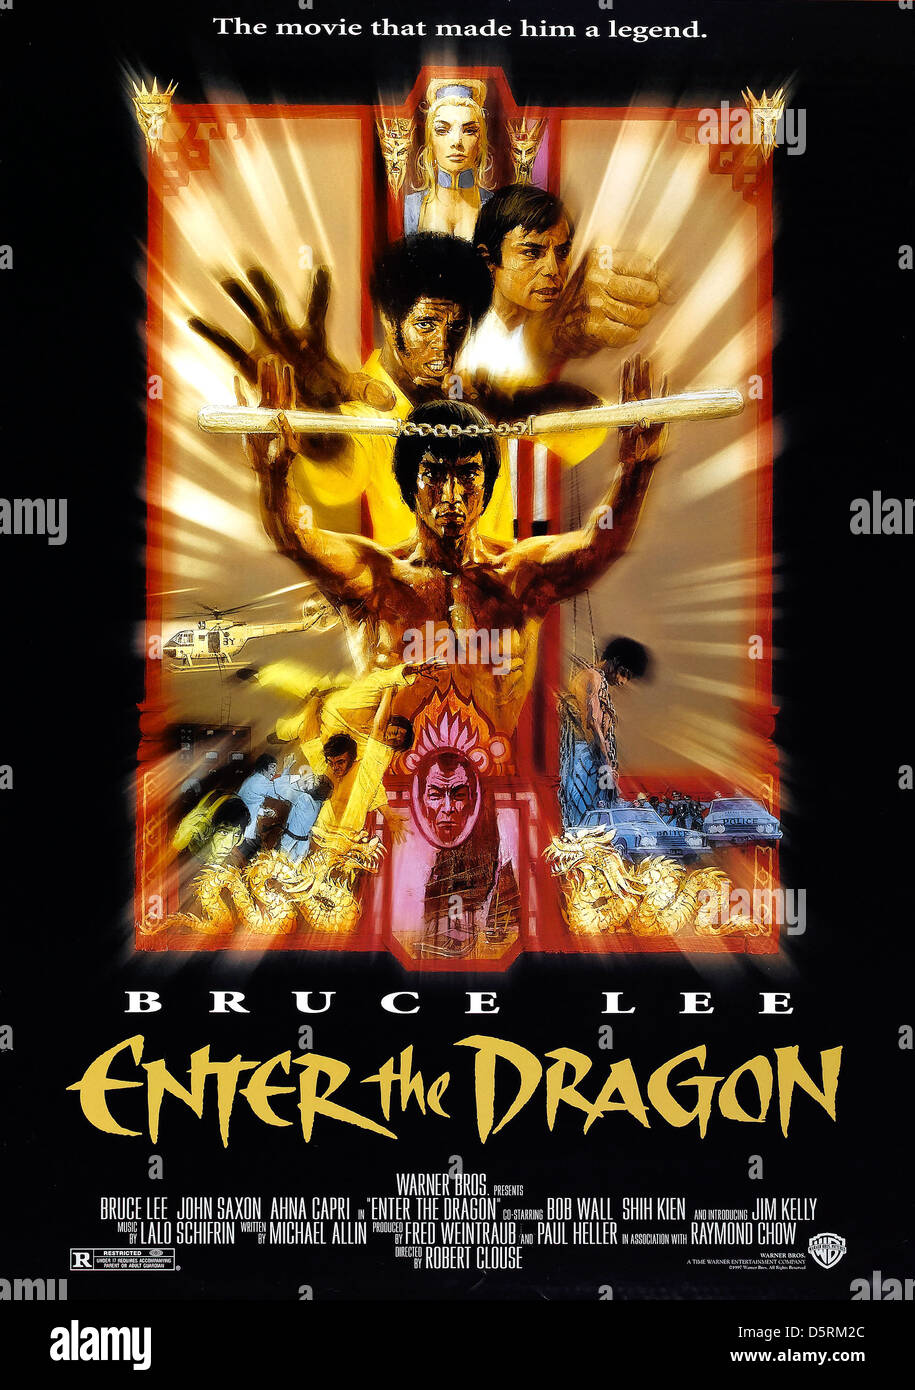 bruce lee poster enter the dragon 1973 stock photo